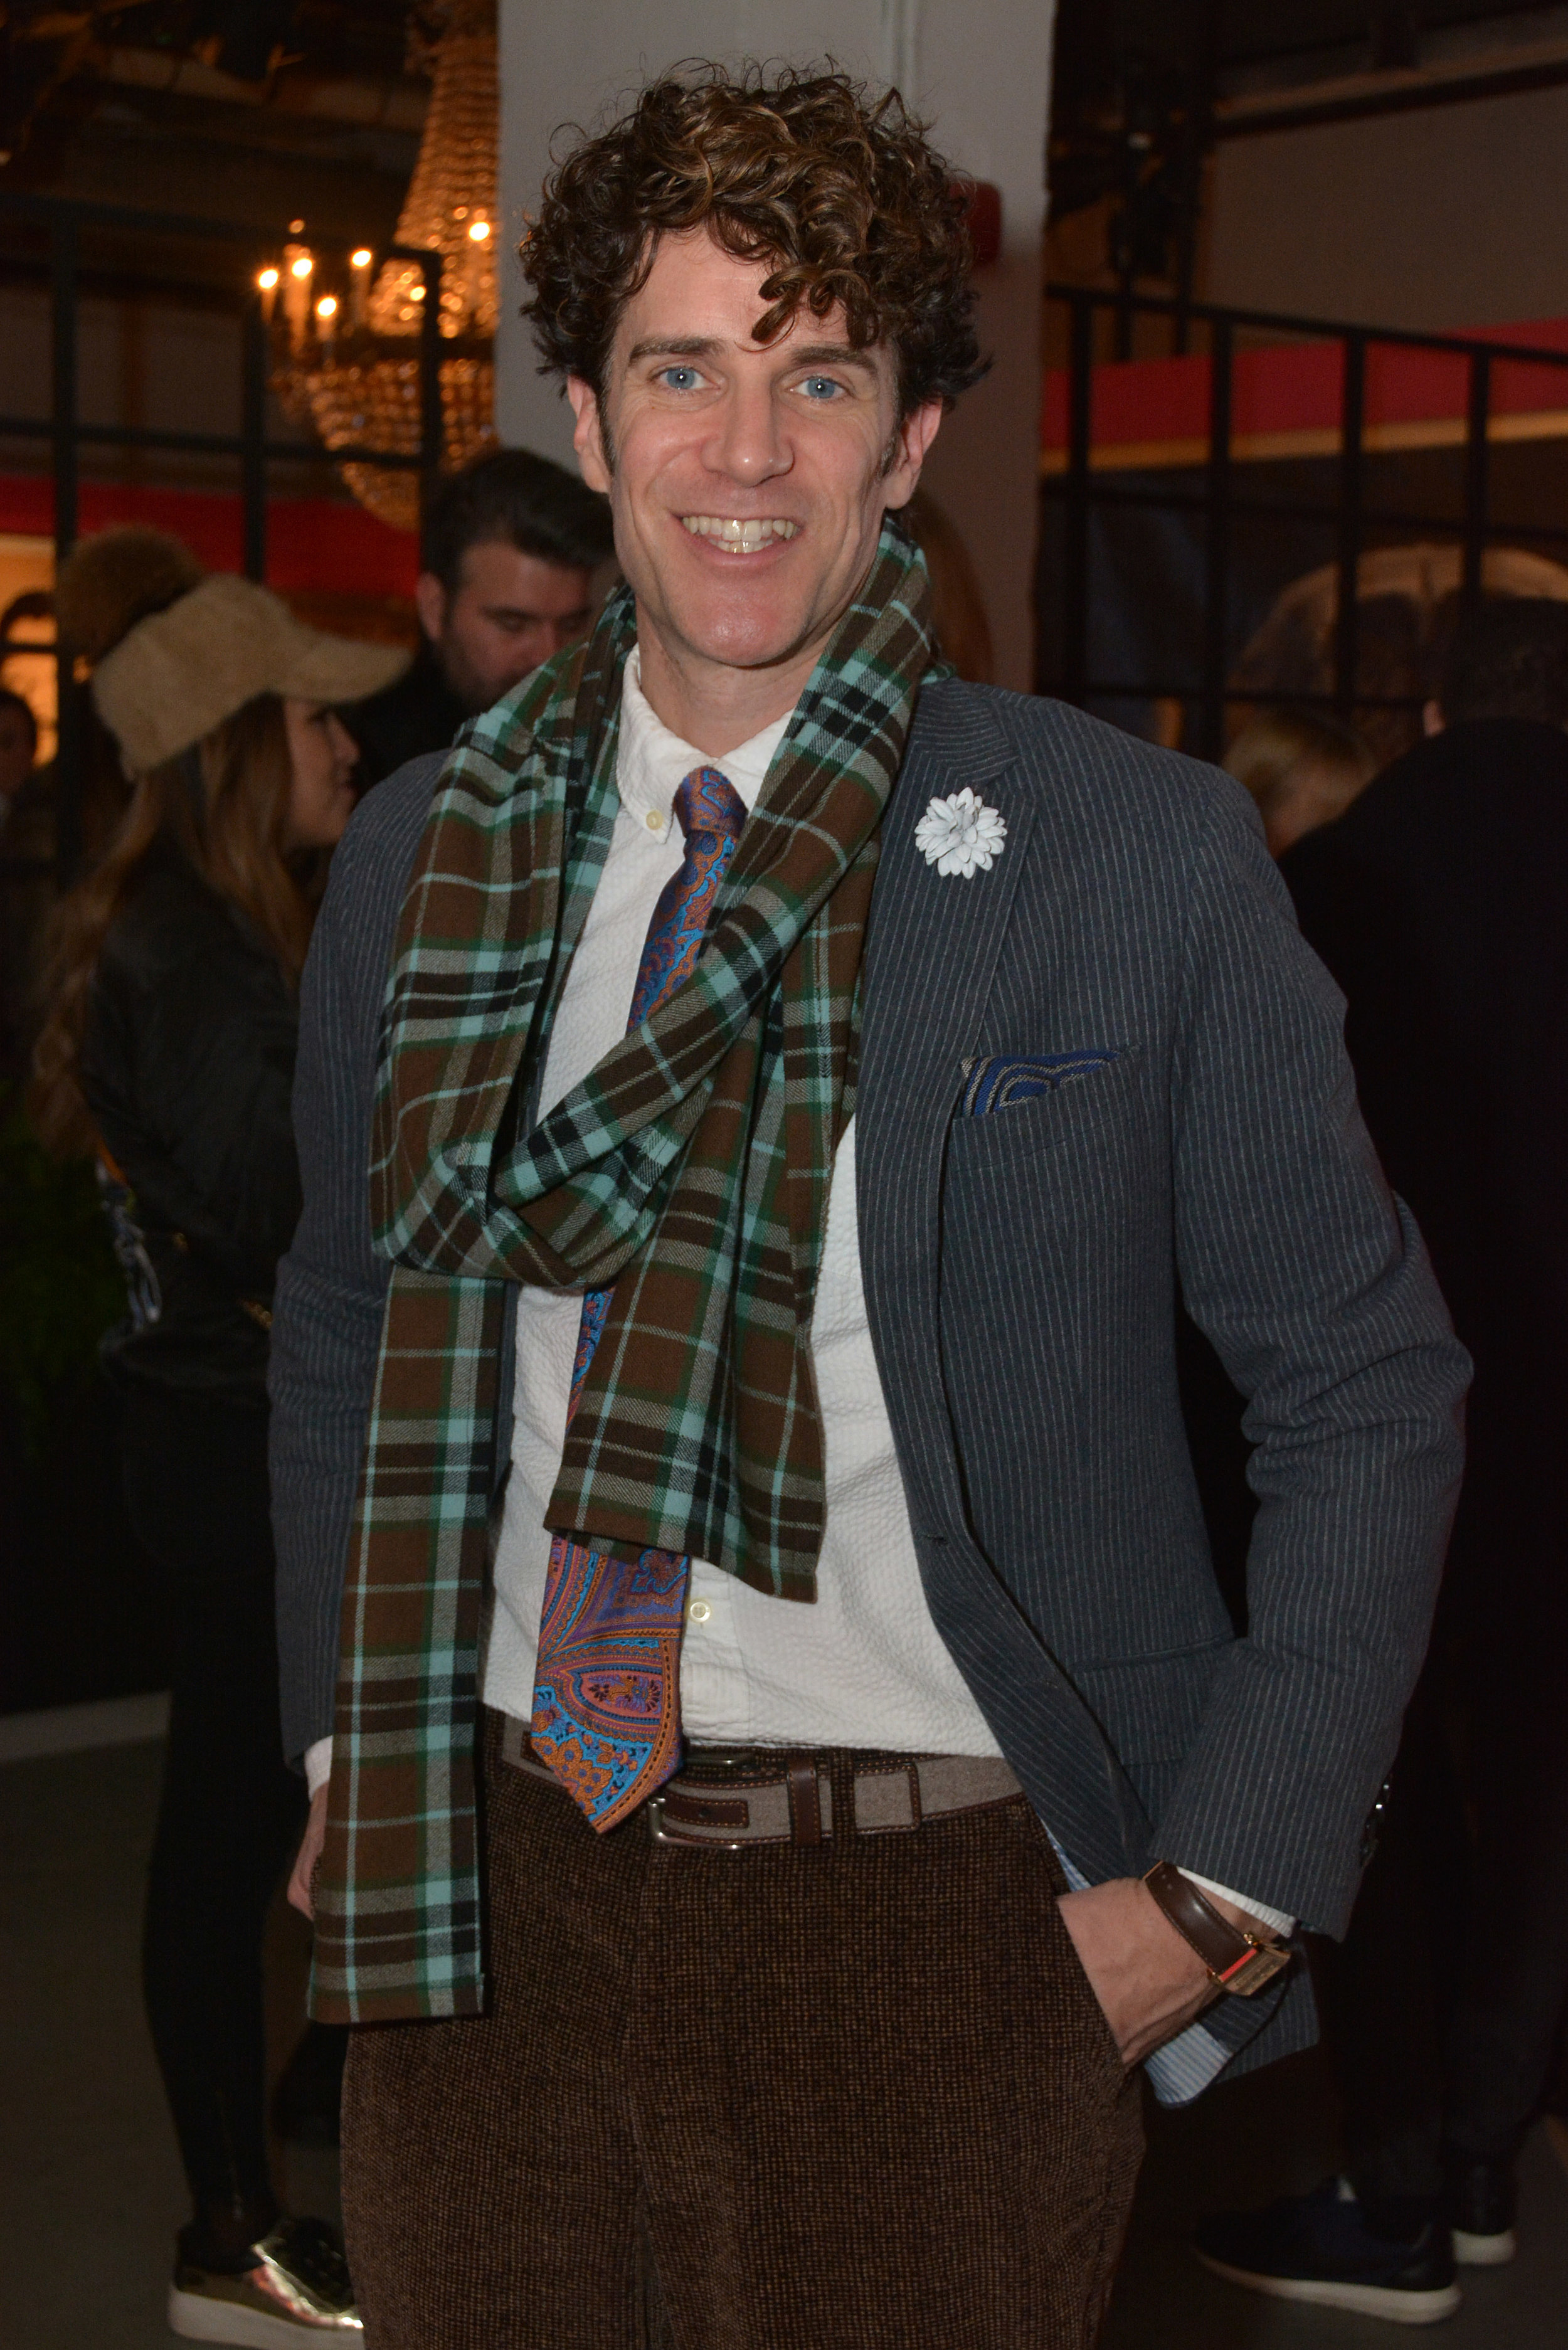 Thomas Farley attends NYFW during FW17 2.10.17 - photo by Andrew Werner.jpg